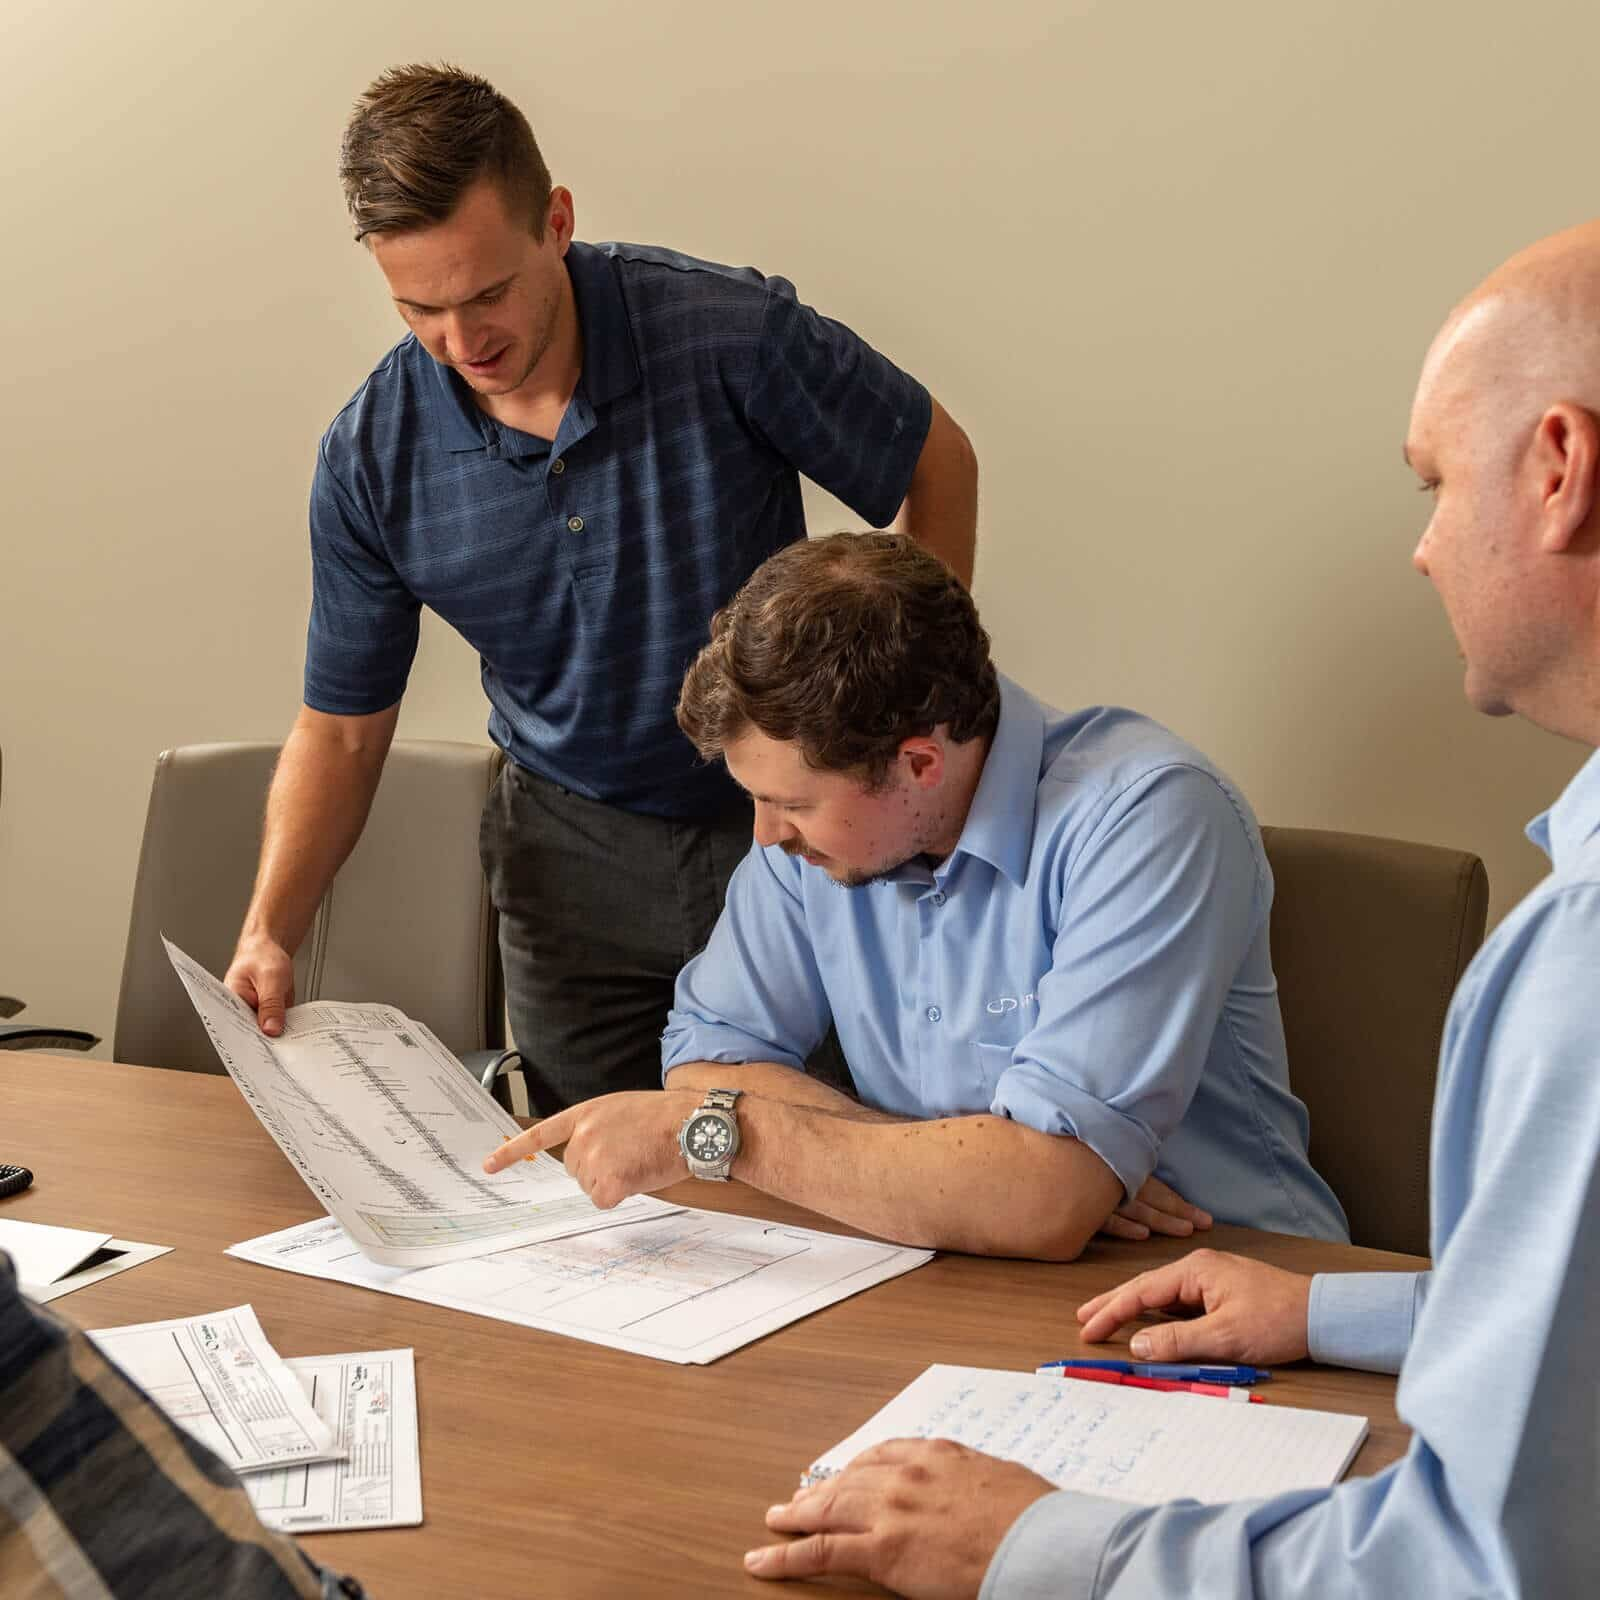 T2ue staff review plans at a conference table